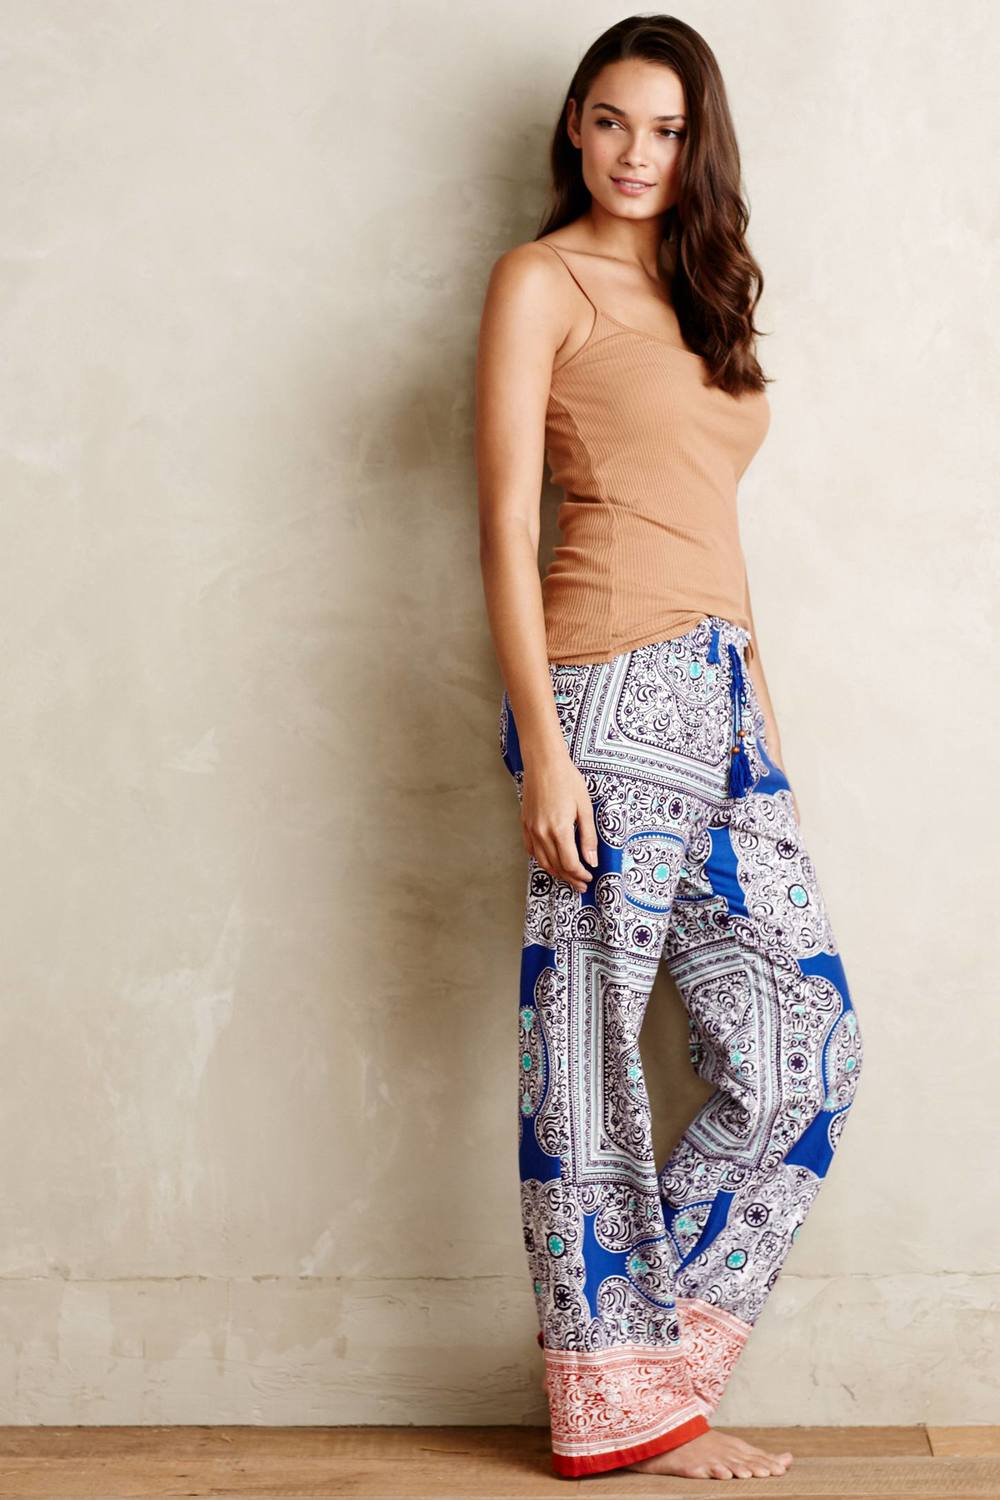 Amina Loungers. Anthropologie. $49.50. (This is the second most expensive thing on the list!)